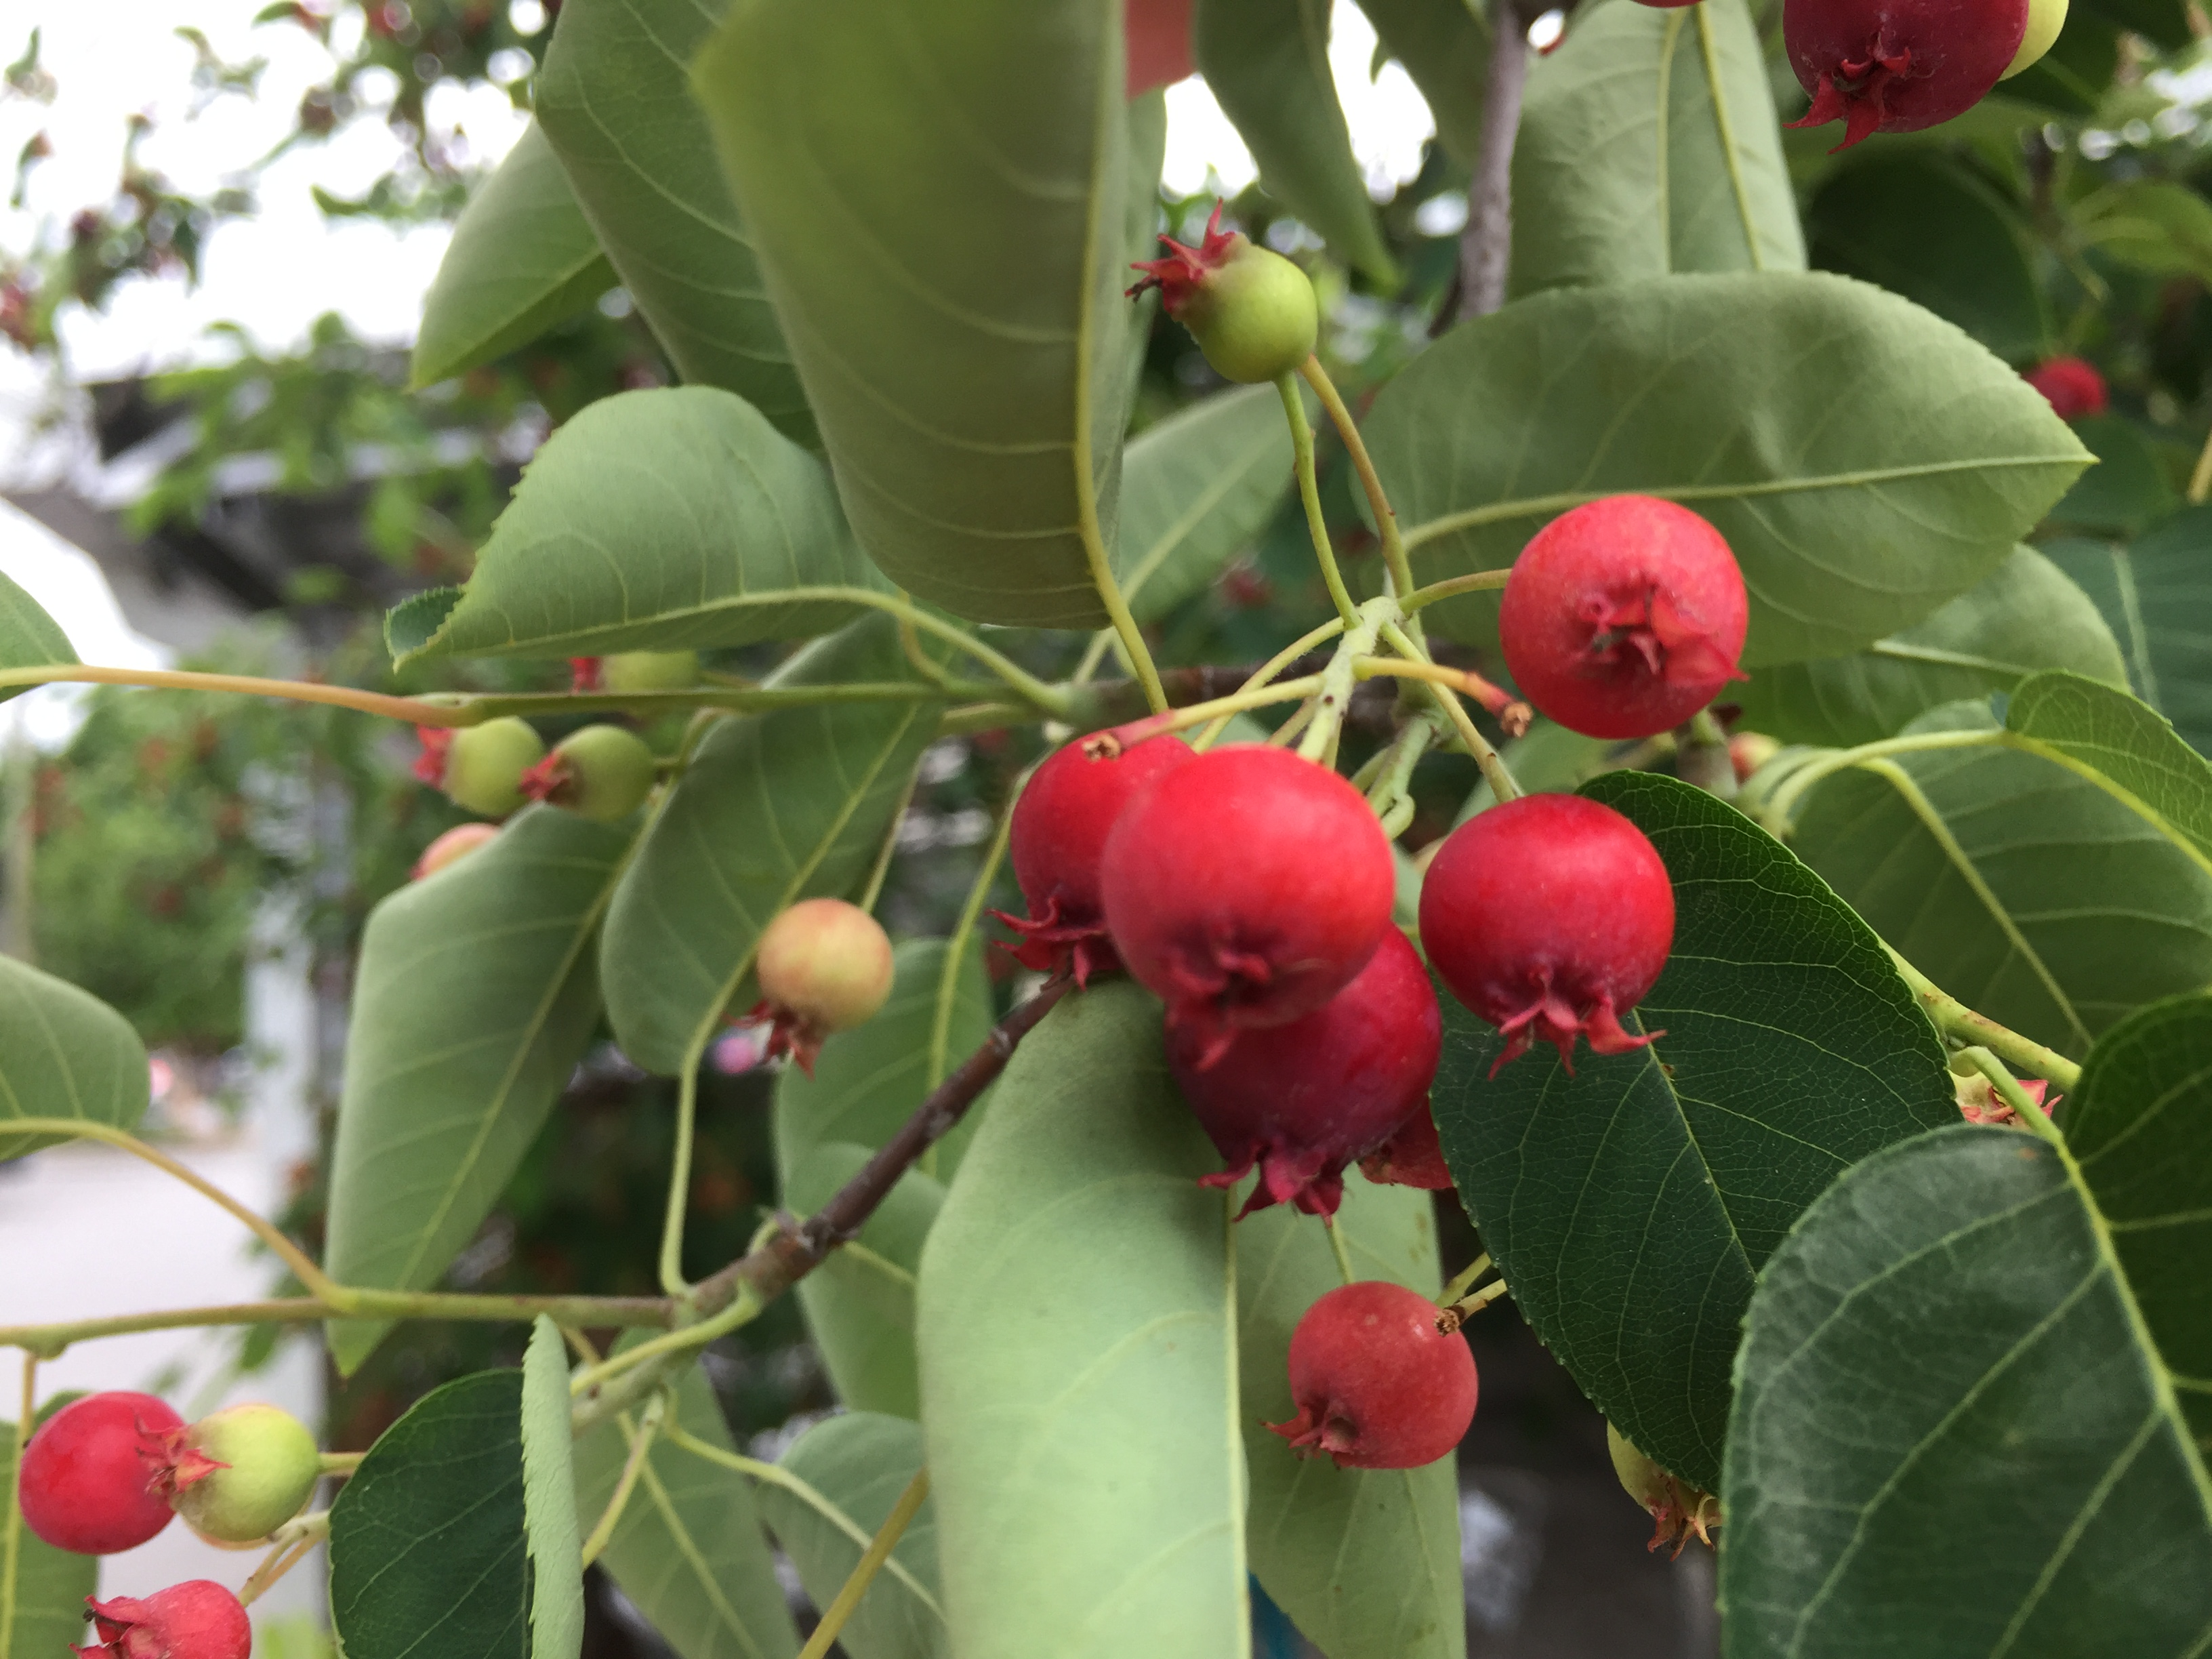 Serviceberry or not general fruit growing growing fruit img1365g3264x2448 163 mb altavistaventures Image collections